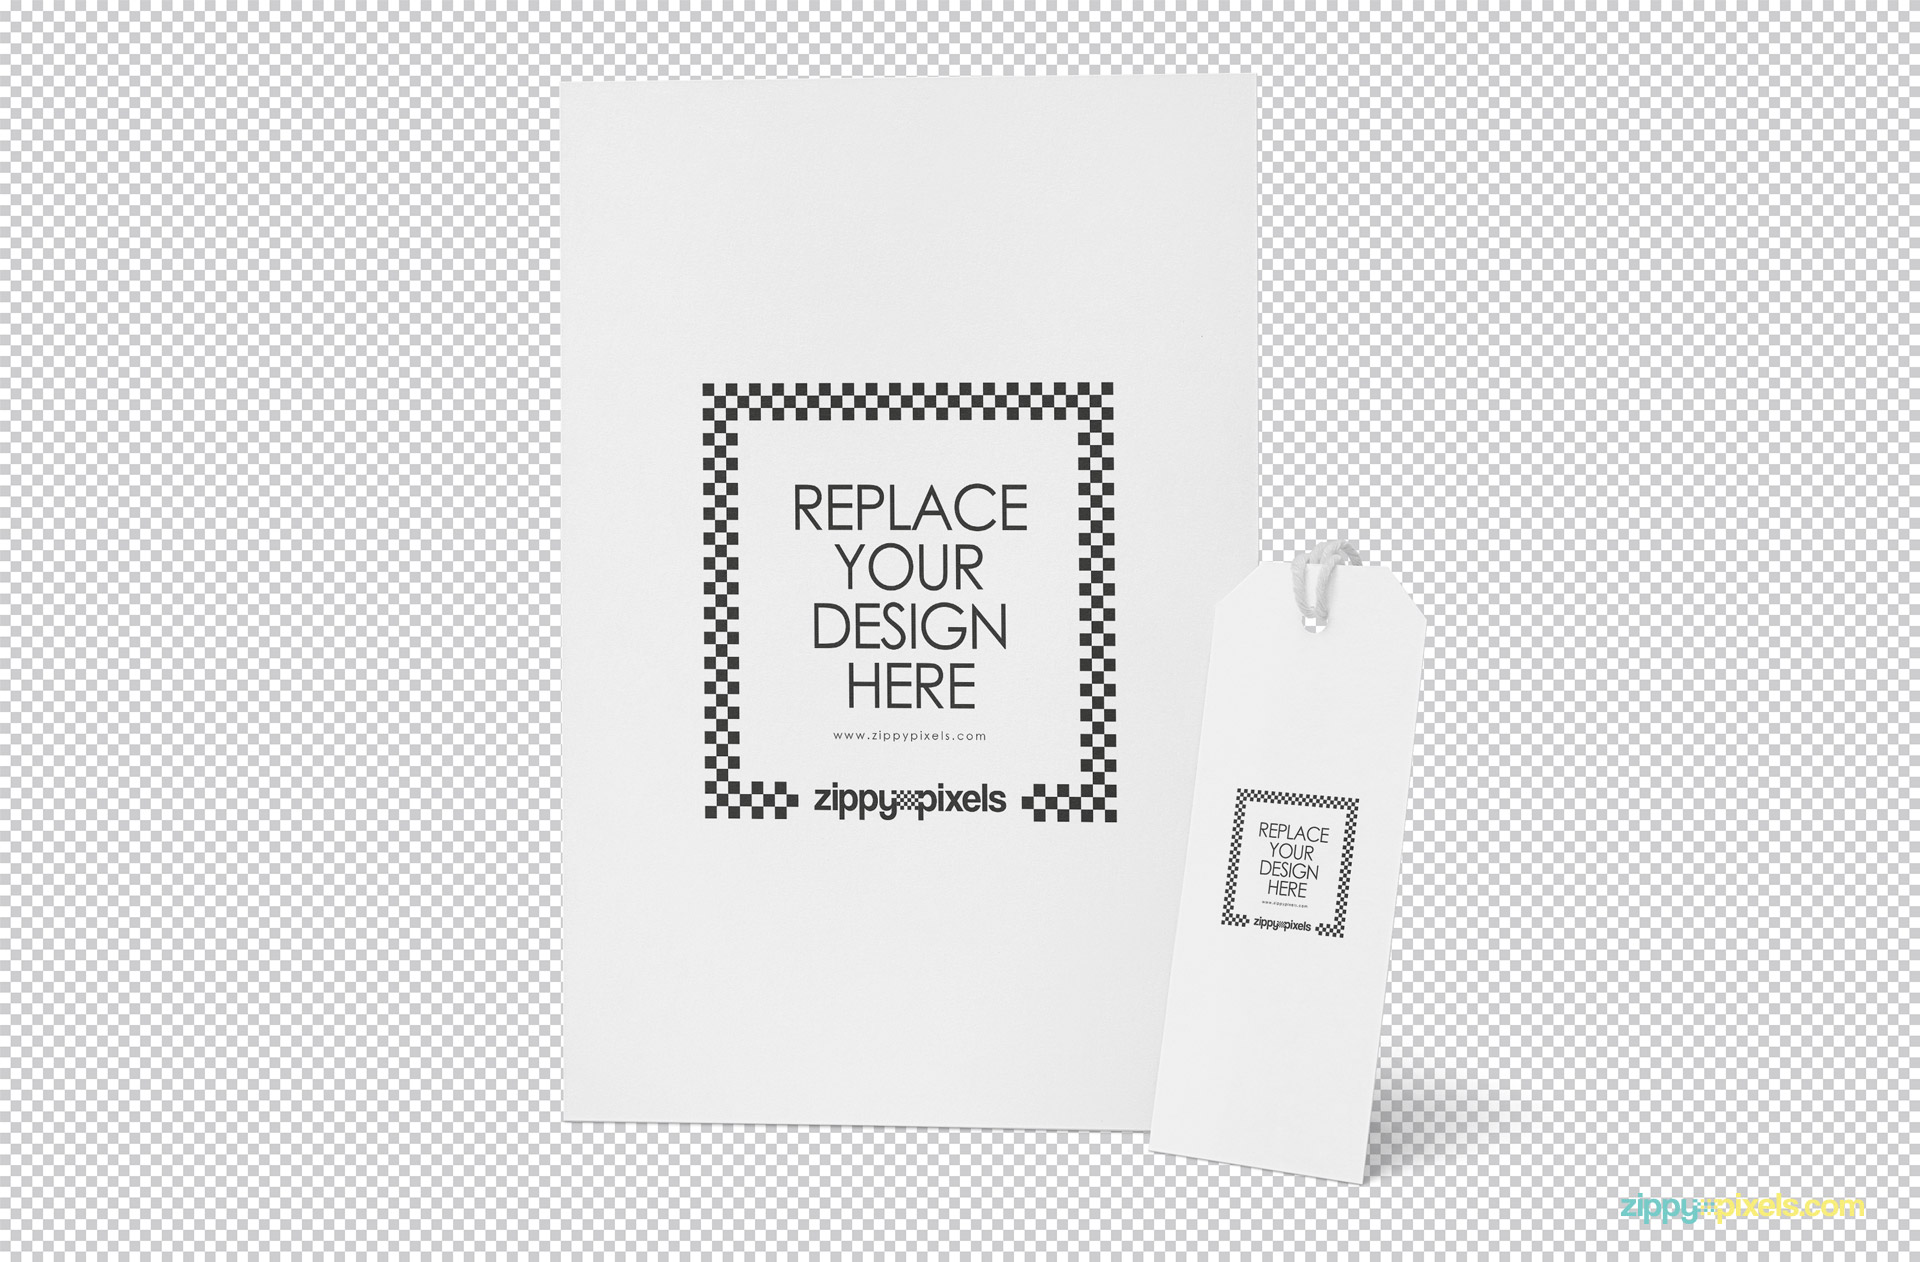 Display your design on this free letter mockup.